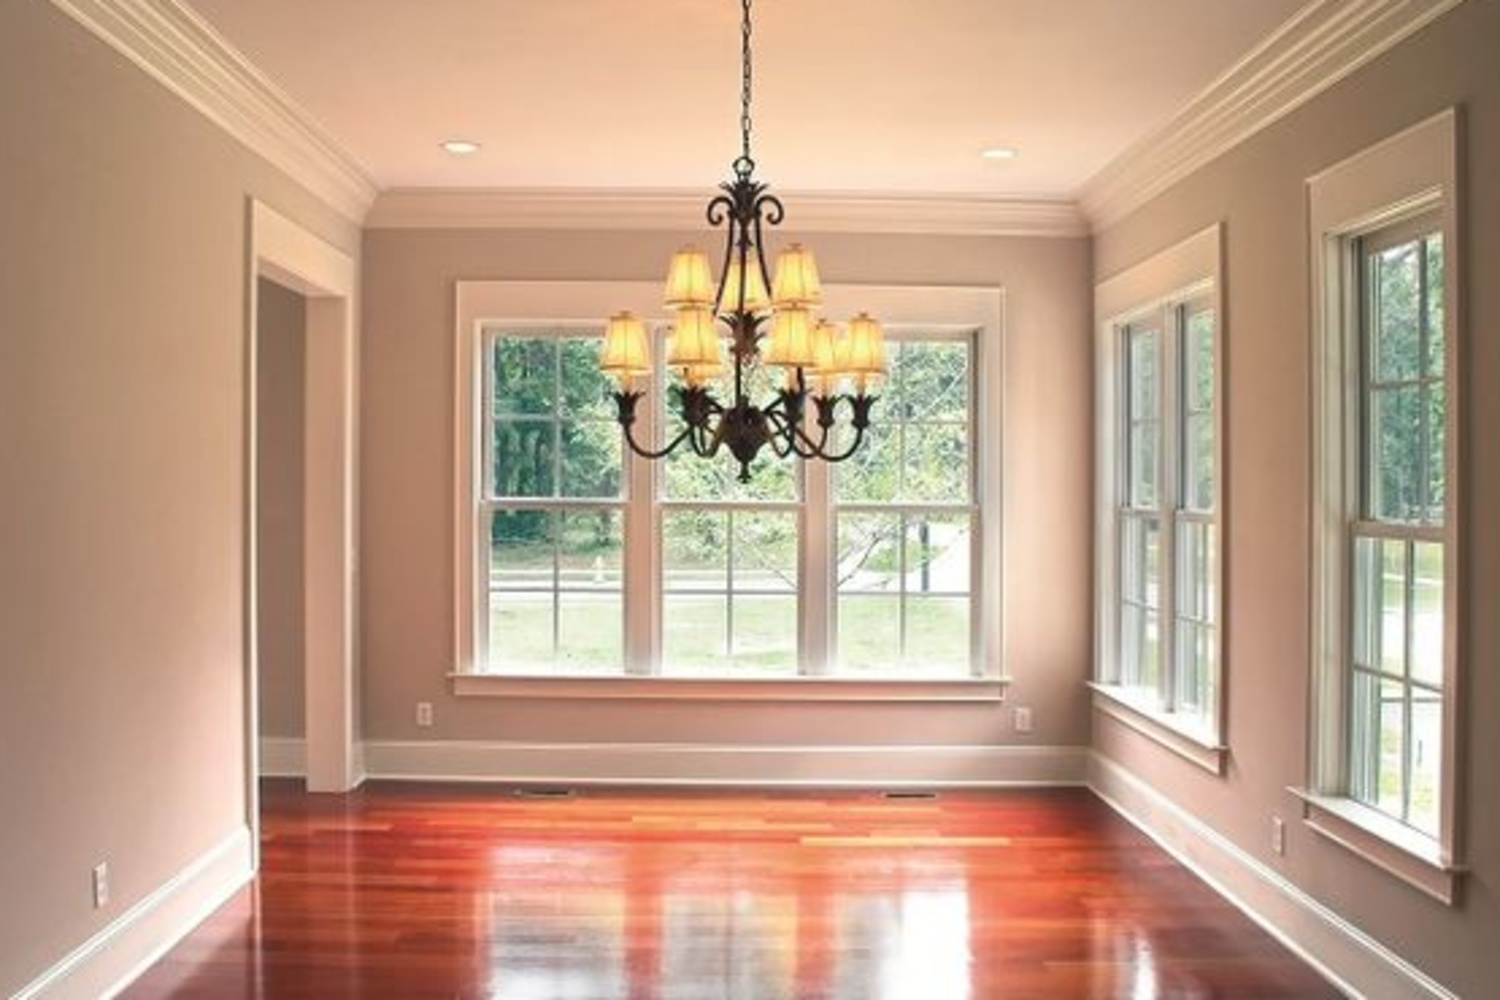 Bayer Built dining room molding